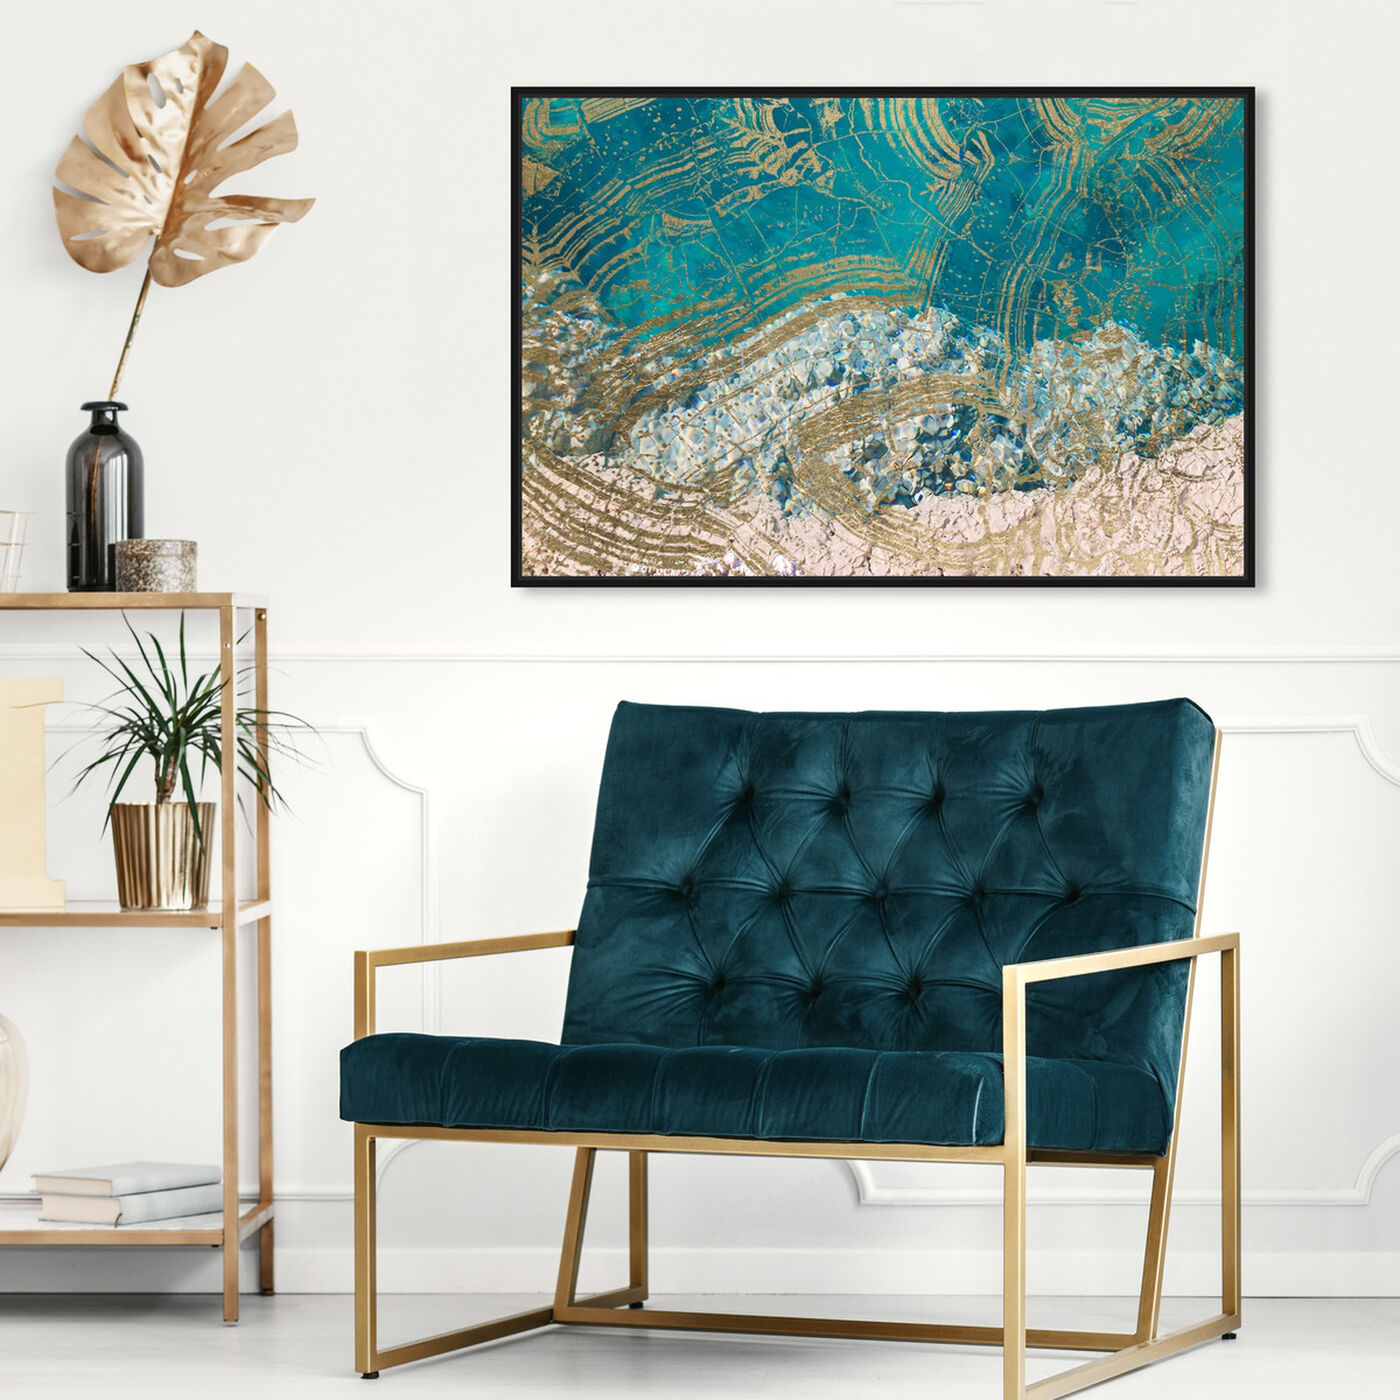 Hanging view of Salt Water featuring abstract and textures art.